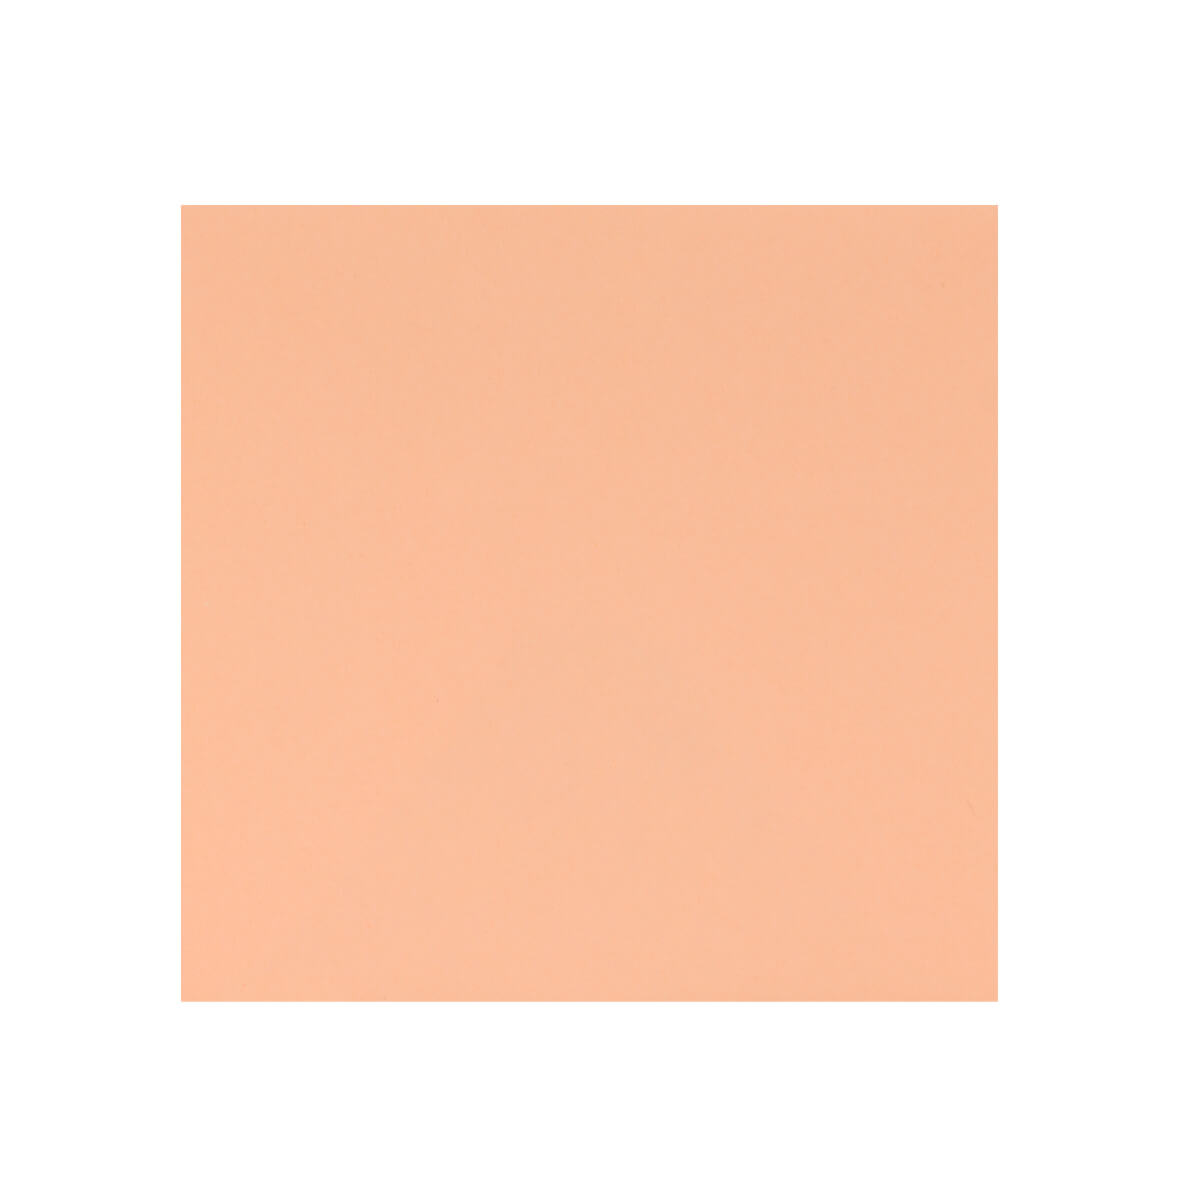 110 x 110mm SALMON PINK ENVELOPES